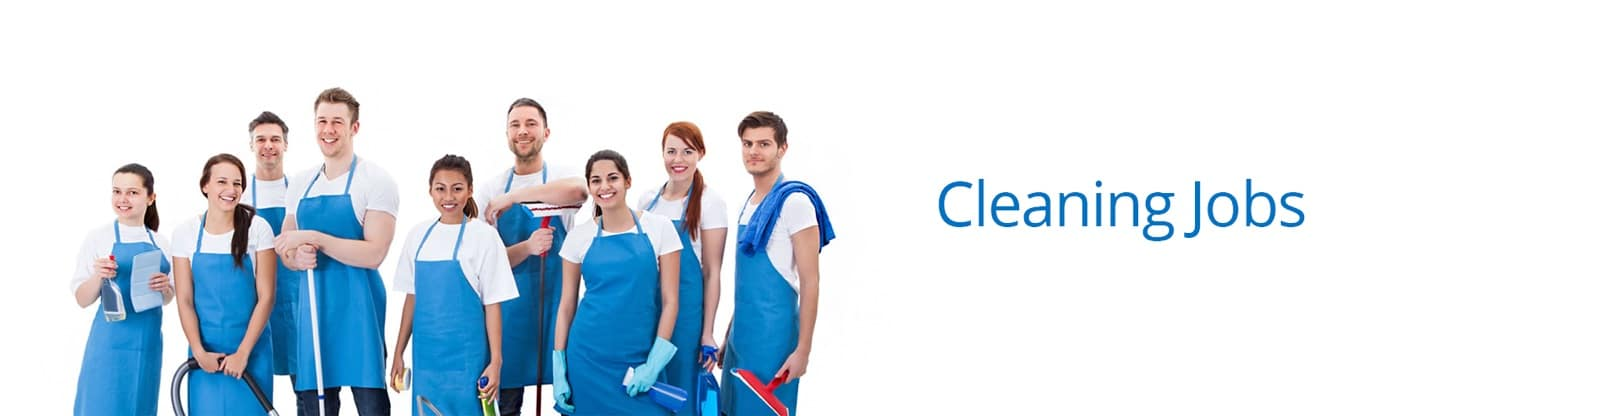 Diamond Home Support Cleaning Jobs